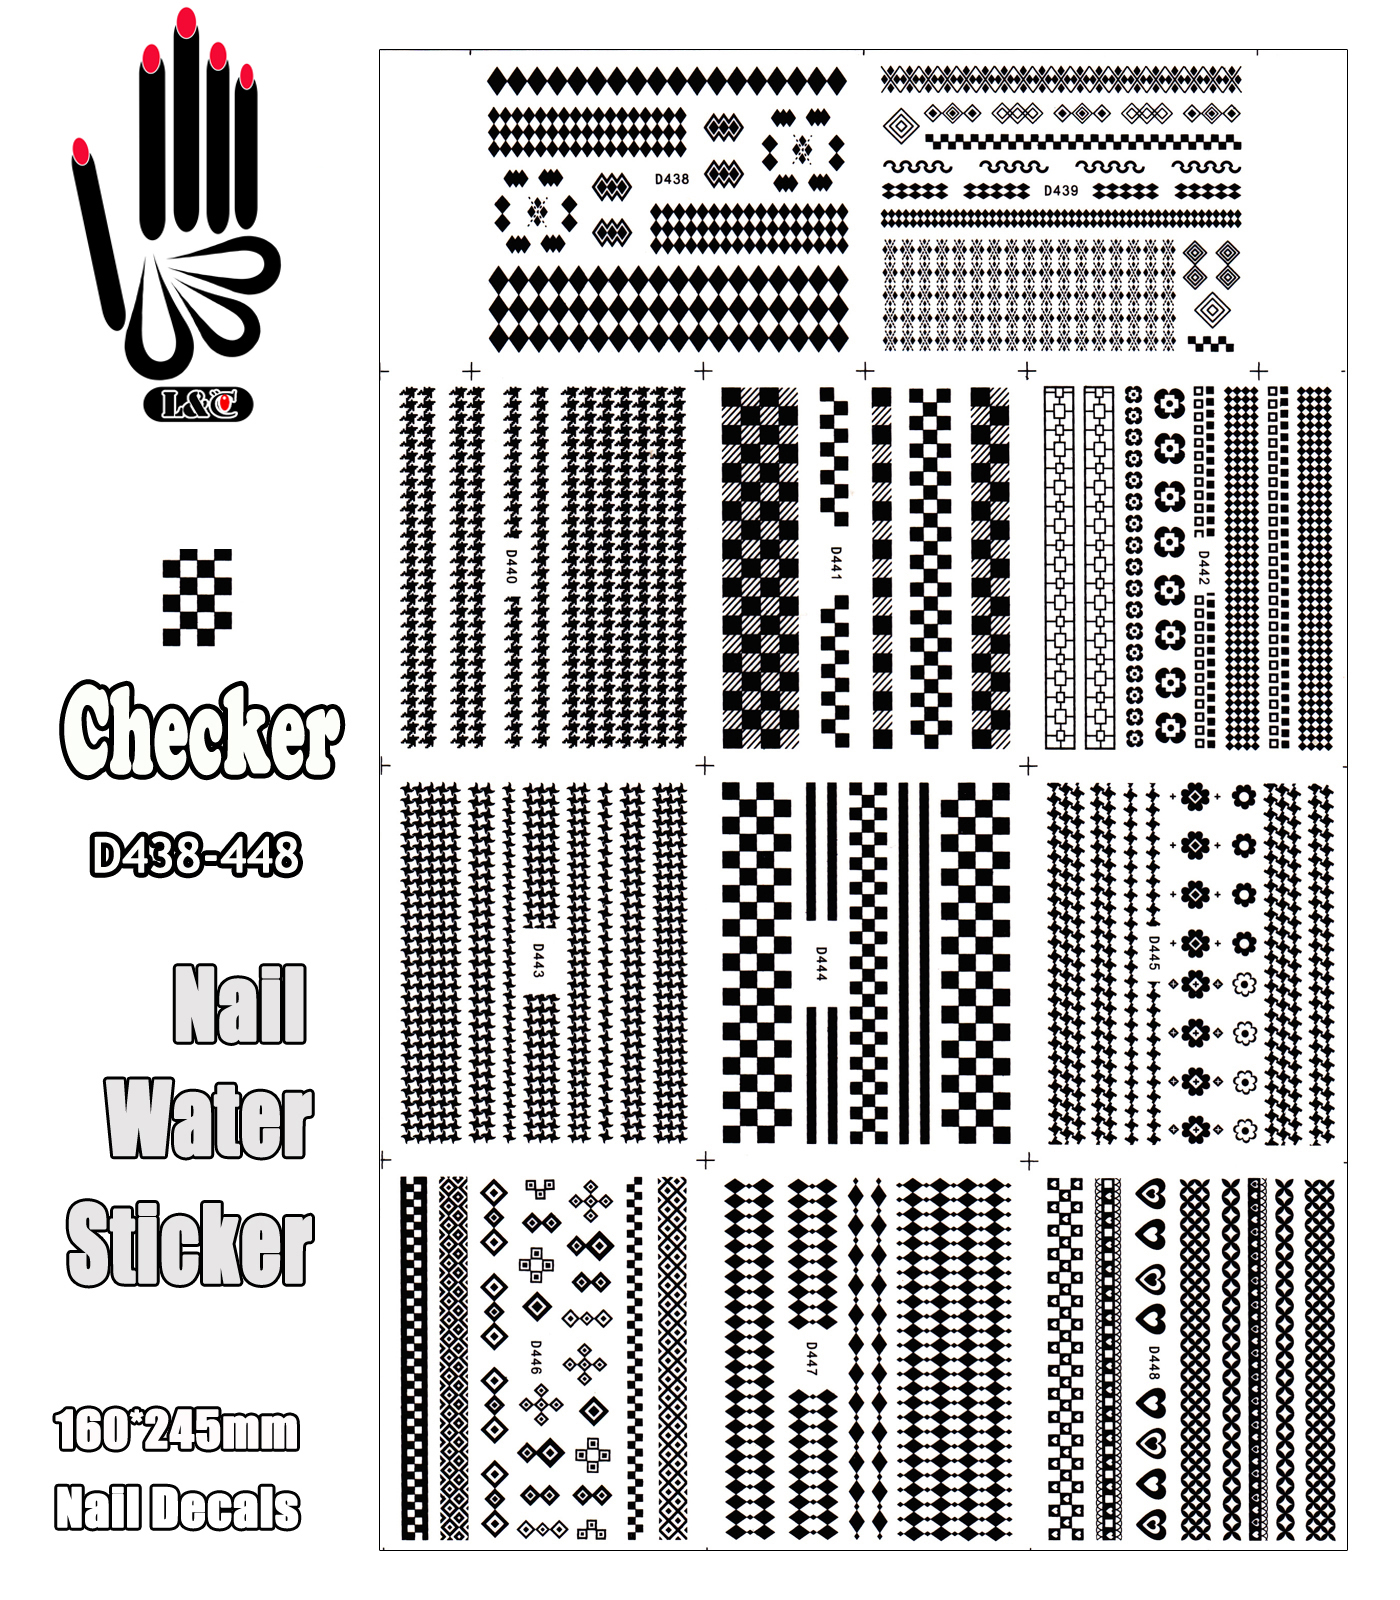 11 Sheets/Lot Art Sticker D438-448 Classics Look Black Checker Nail Art Sticker Water Decal for Nail Decoration(11 DESIGNS IN 1)(China (Mainland))